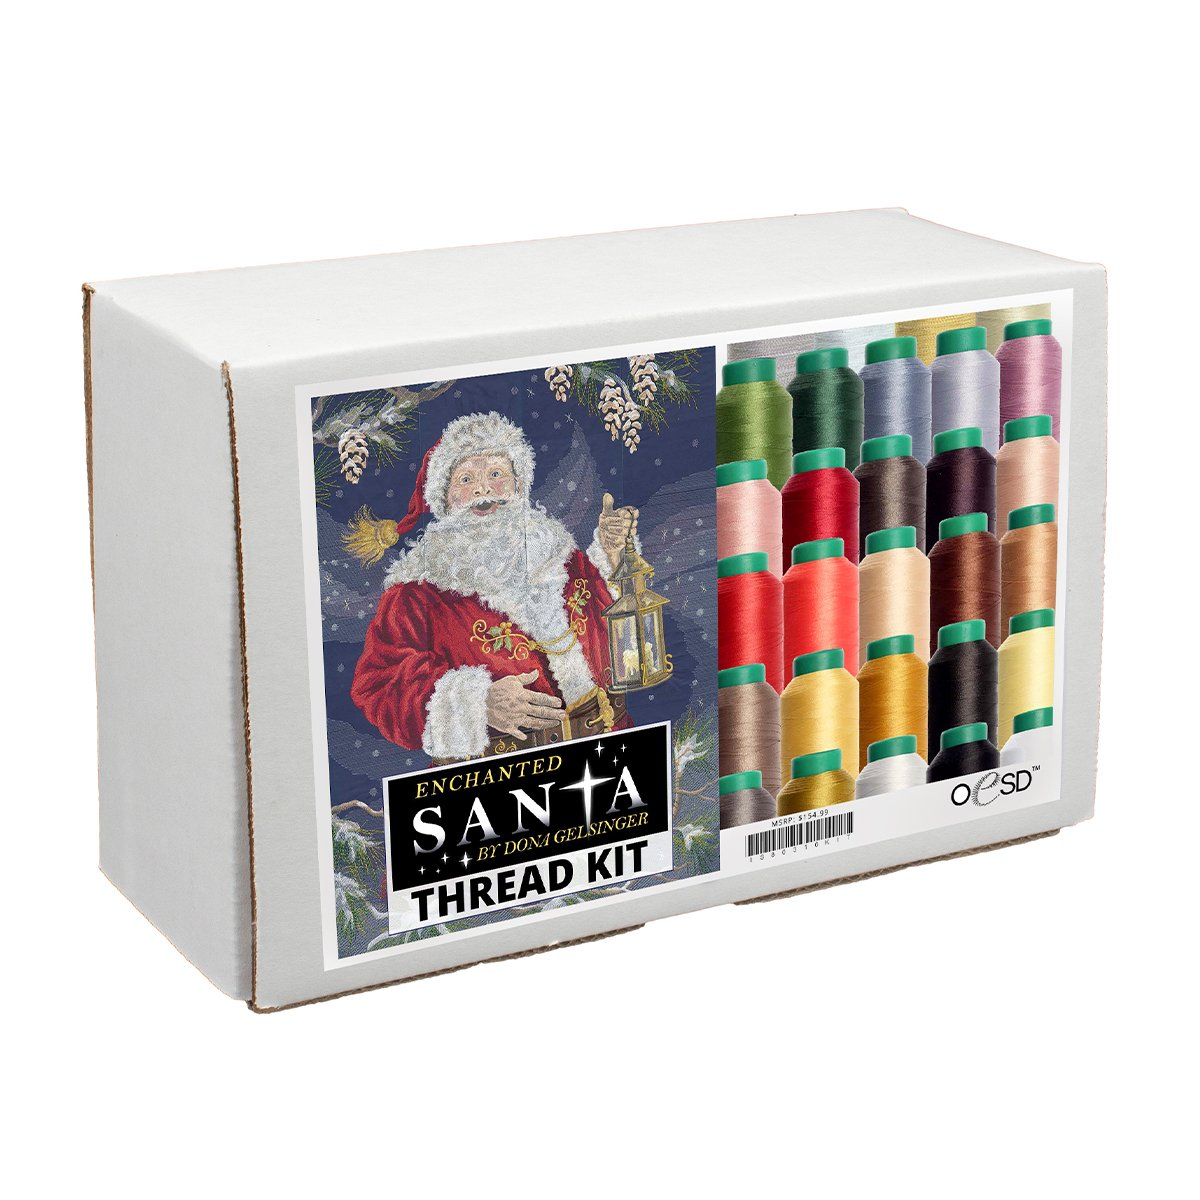 Enchanted Santa Thread Kit by OESD